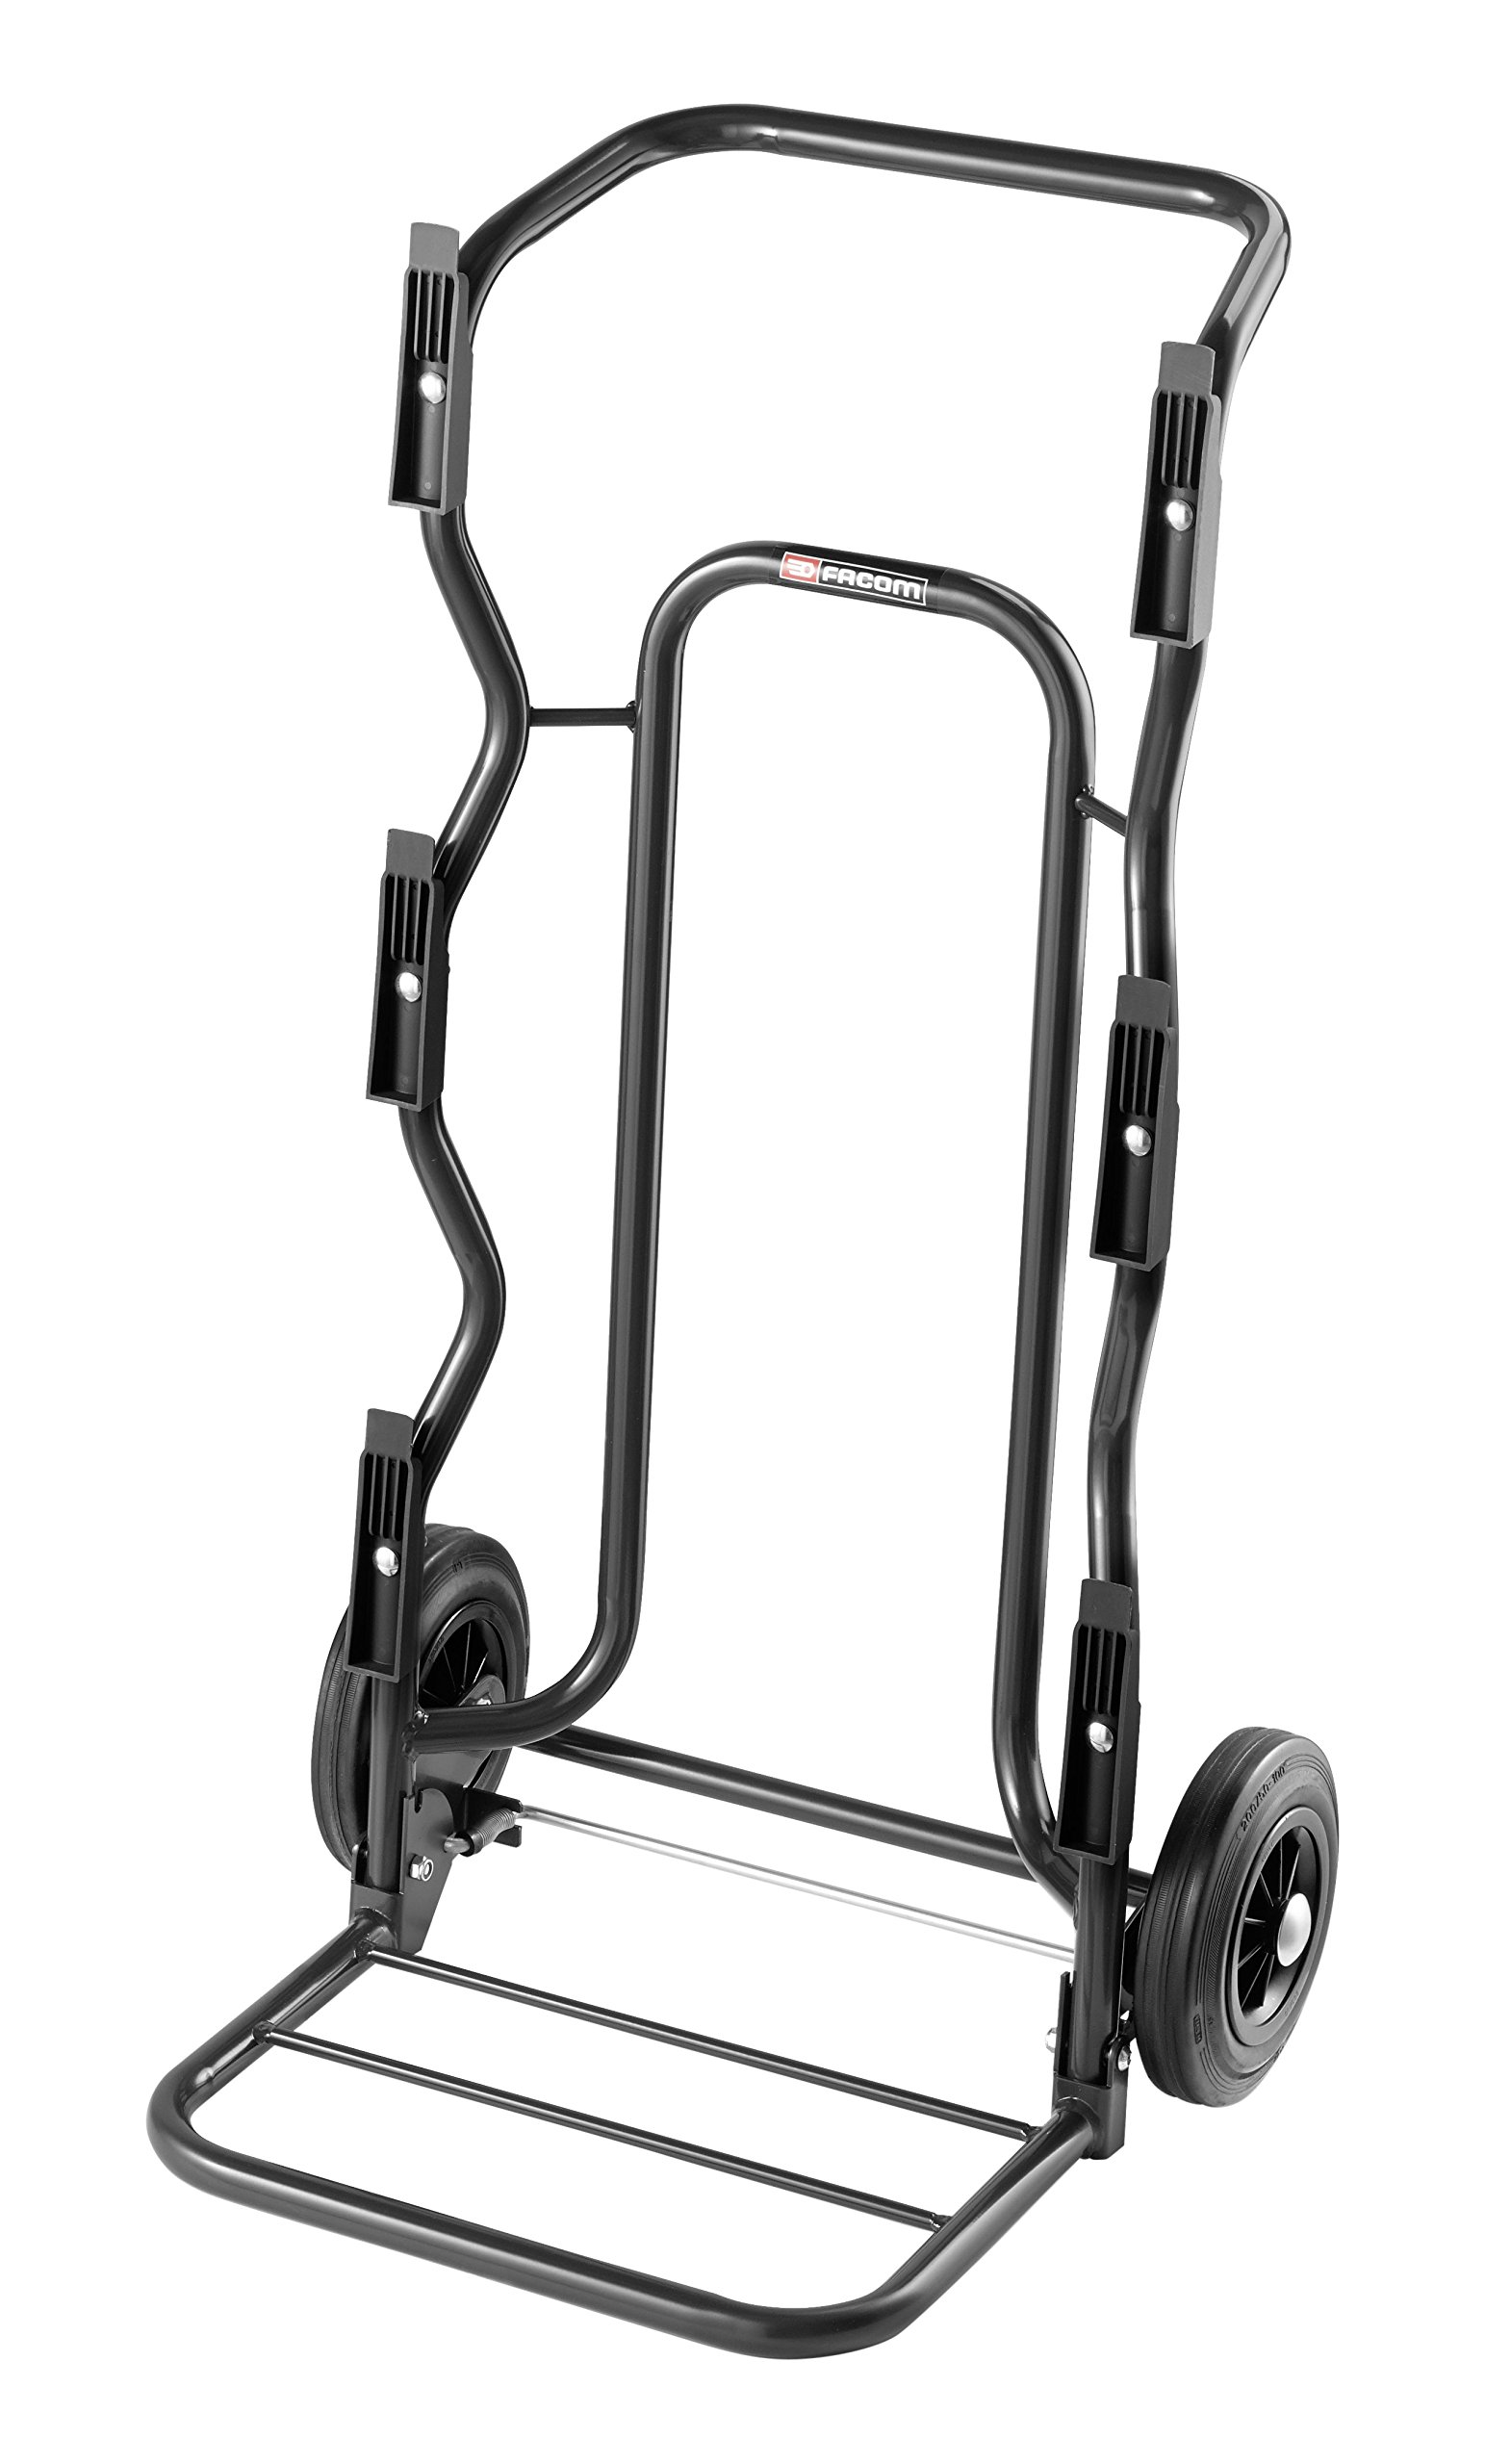 Facom BT.HT1PG Multi-Purpose DeliveryTrolley